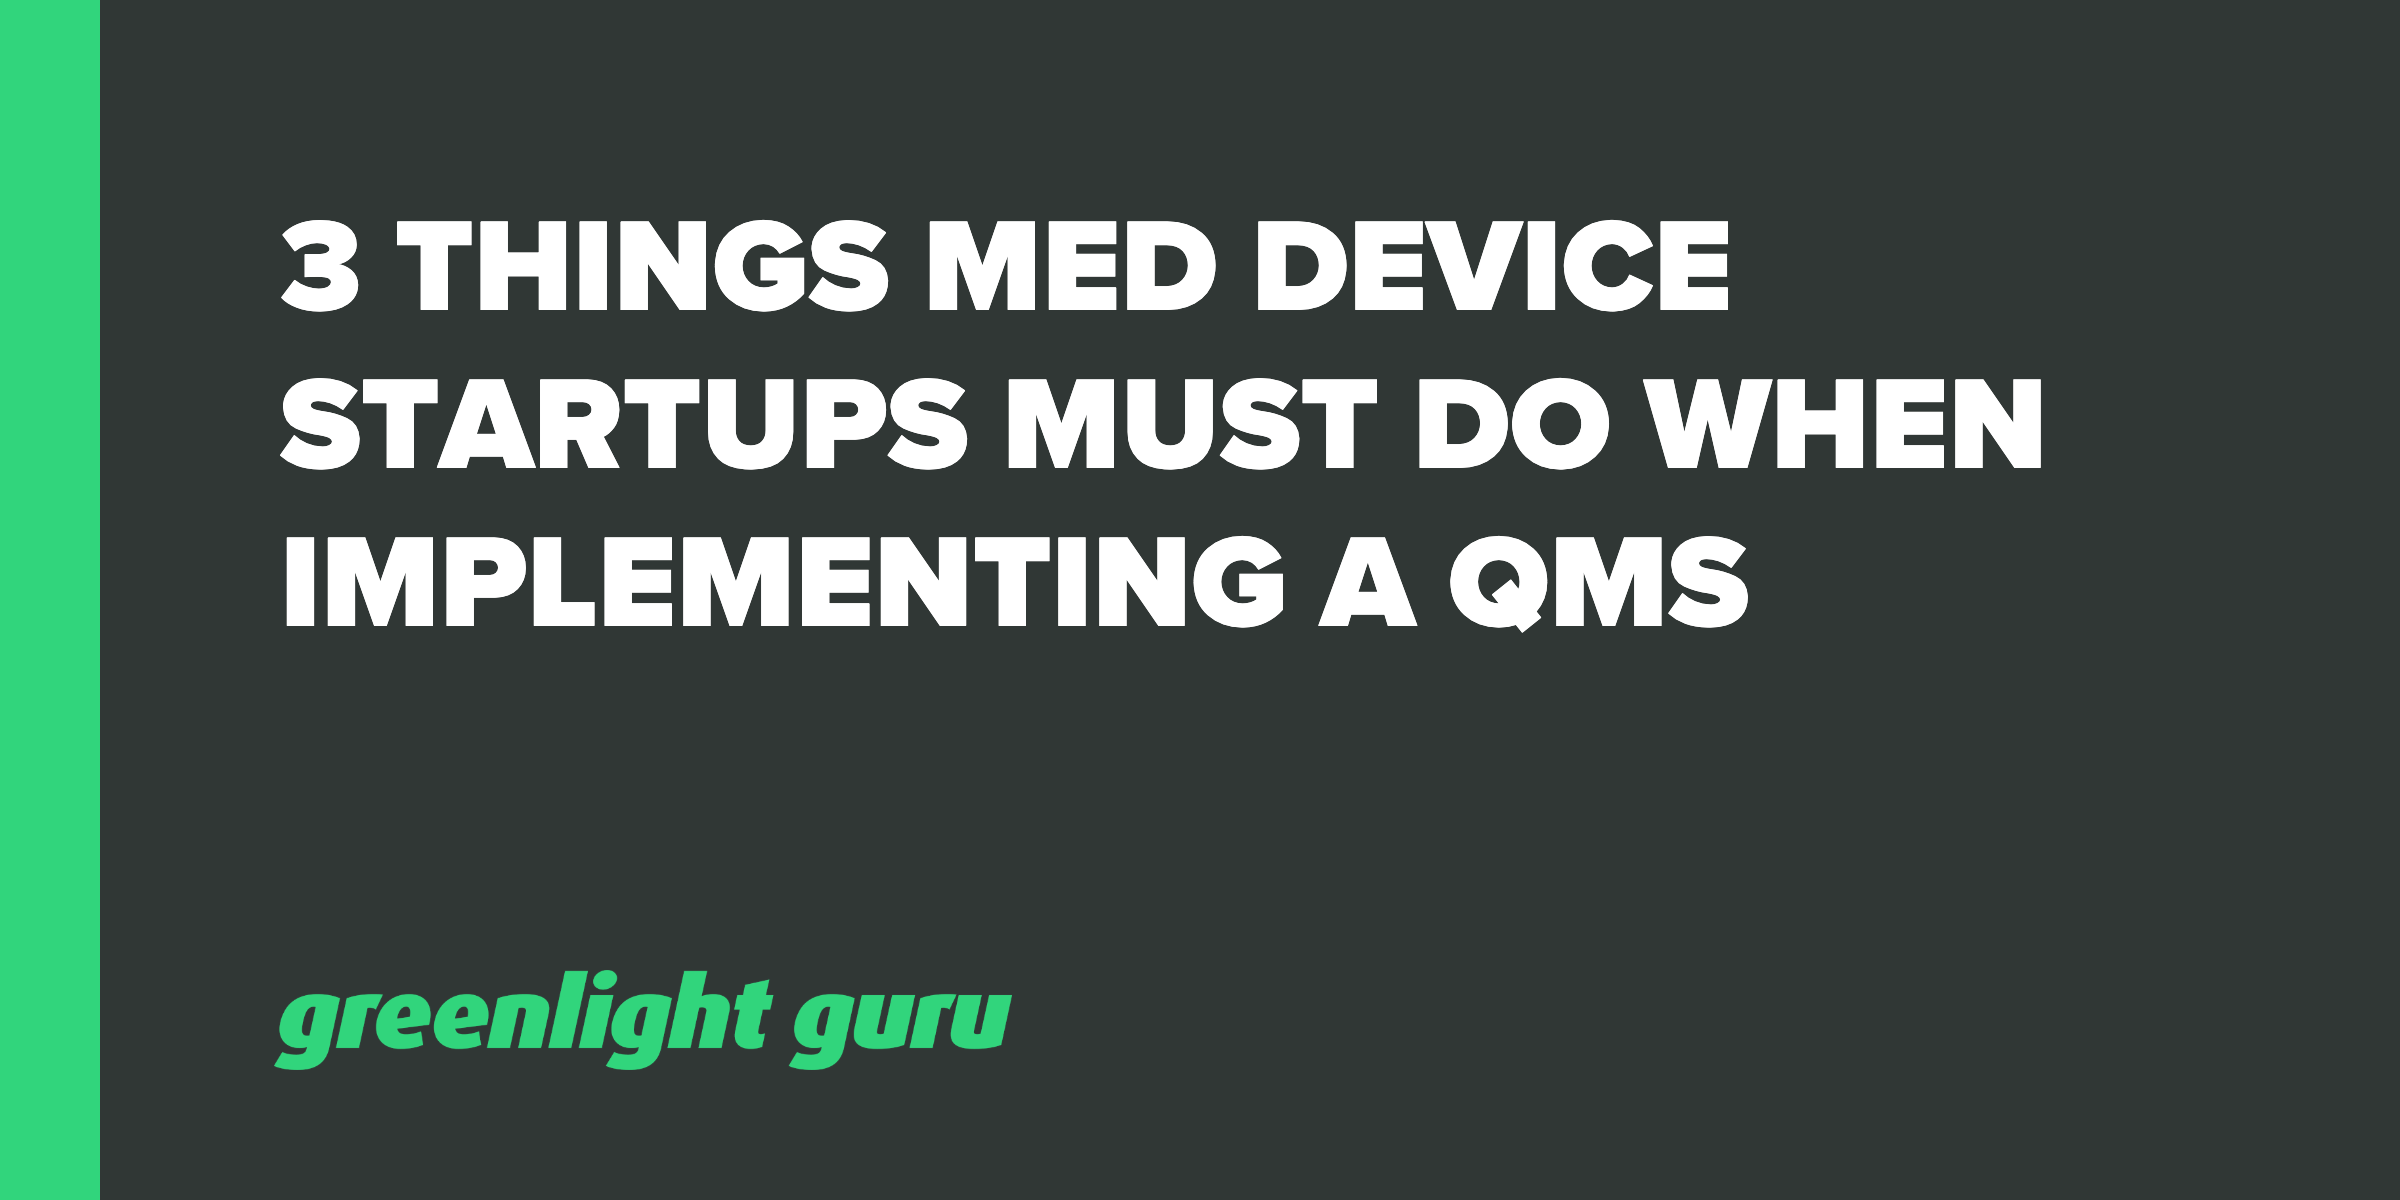 3 Things Med Device Startups Must Do When Implementing a QMS - Featured Image